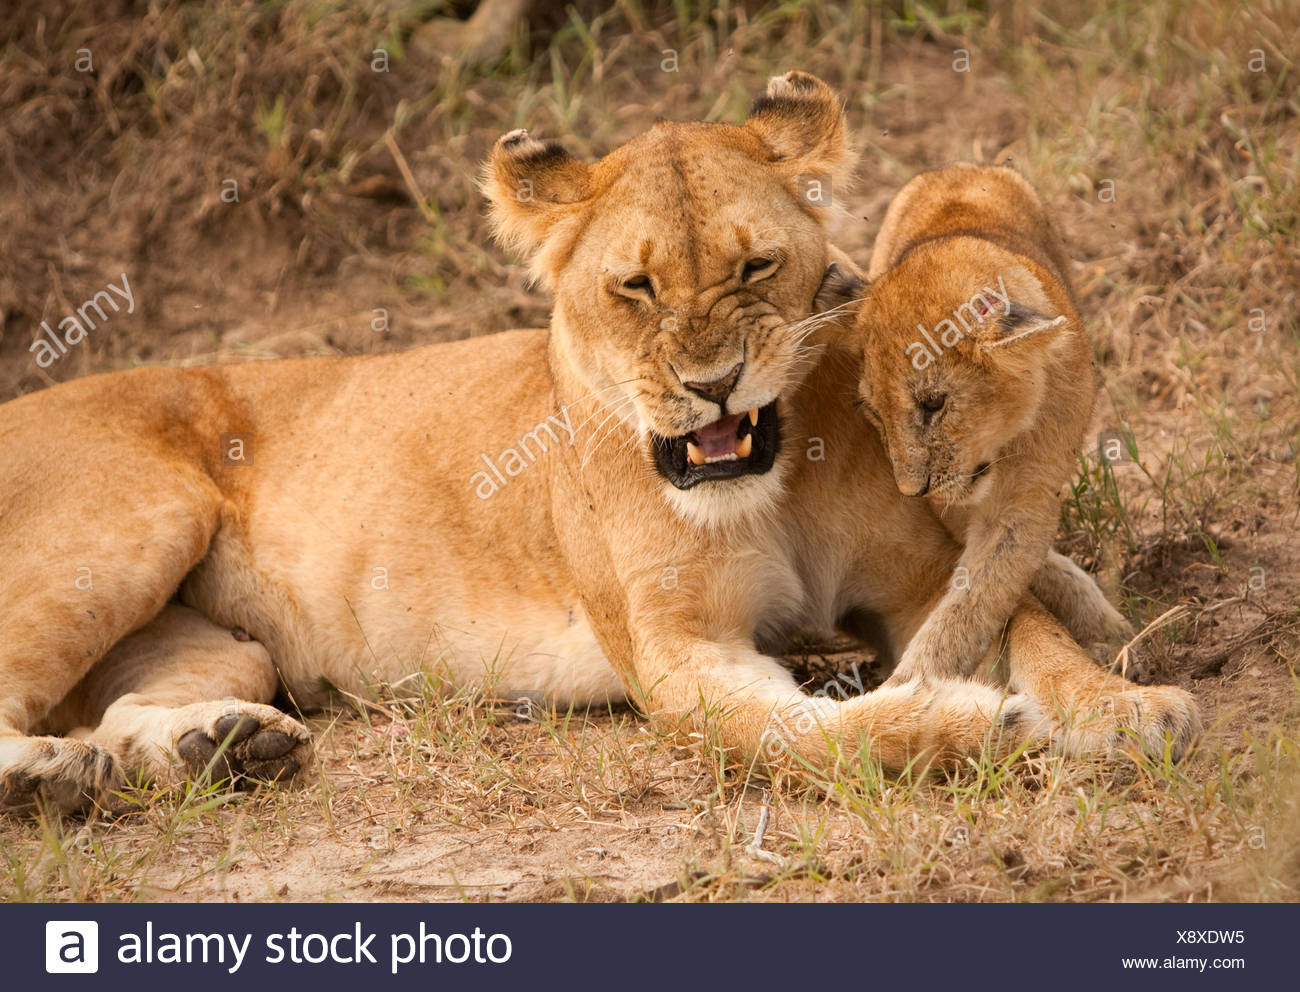 Mother Lion plays with her cub on Masai Mara. - Stock Image